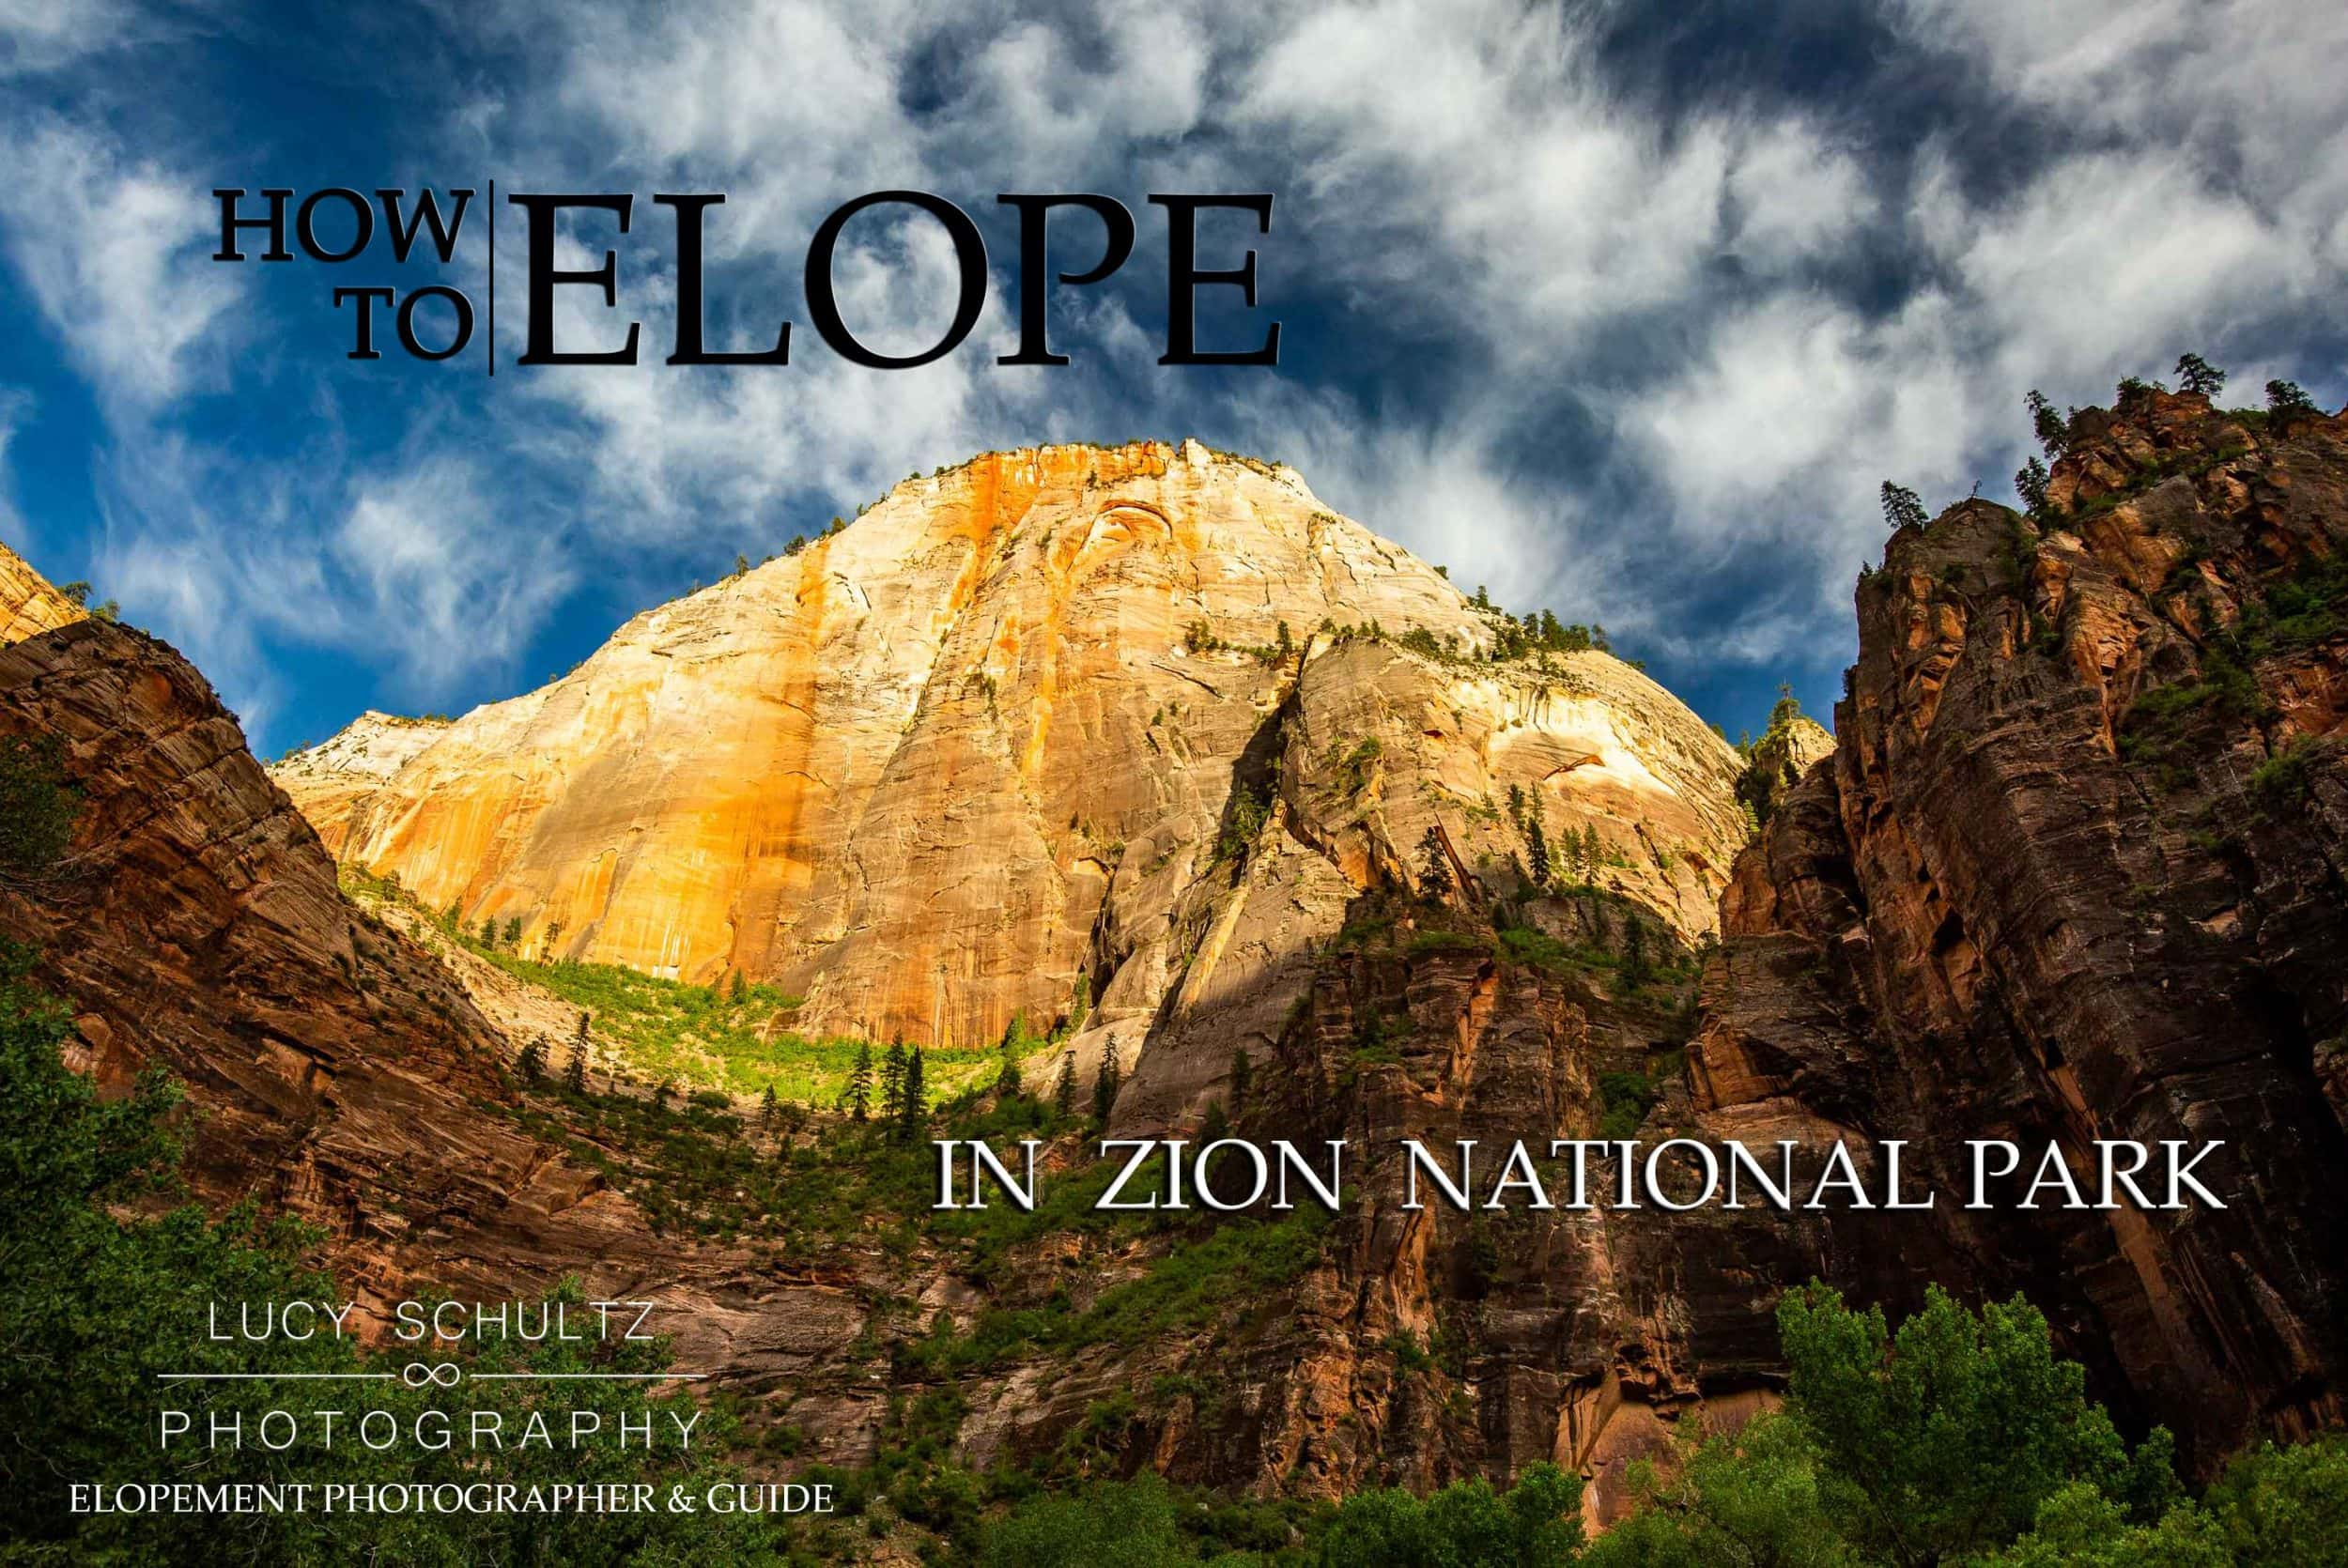 How to Elope in Zion National Park